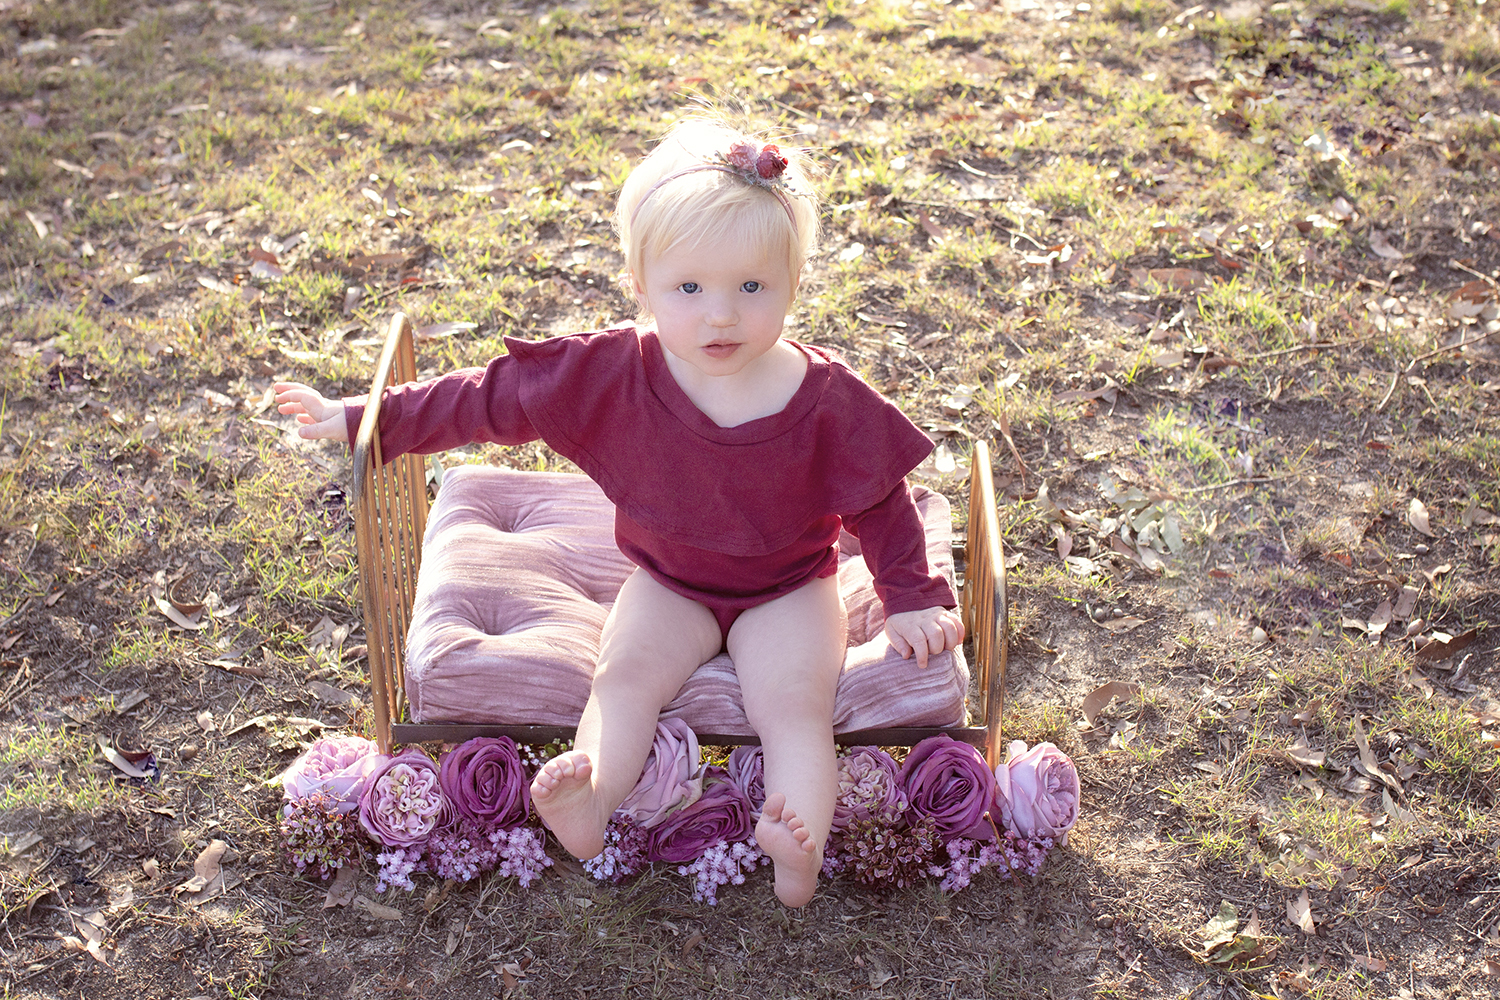 One year old baby girl sitting on vinatge gold iron bed in park at sunset wearing maroon romper with flower tieback sitting on pink velvet pillow surrounded by flowers